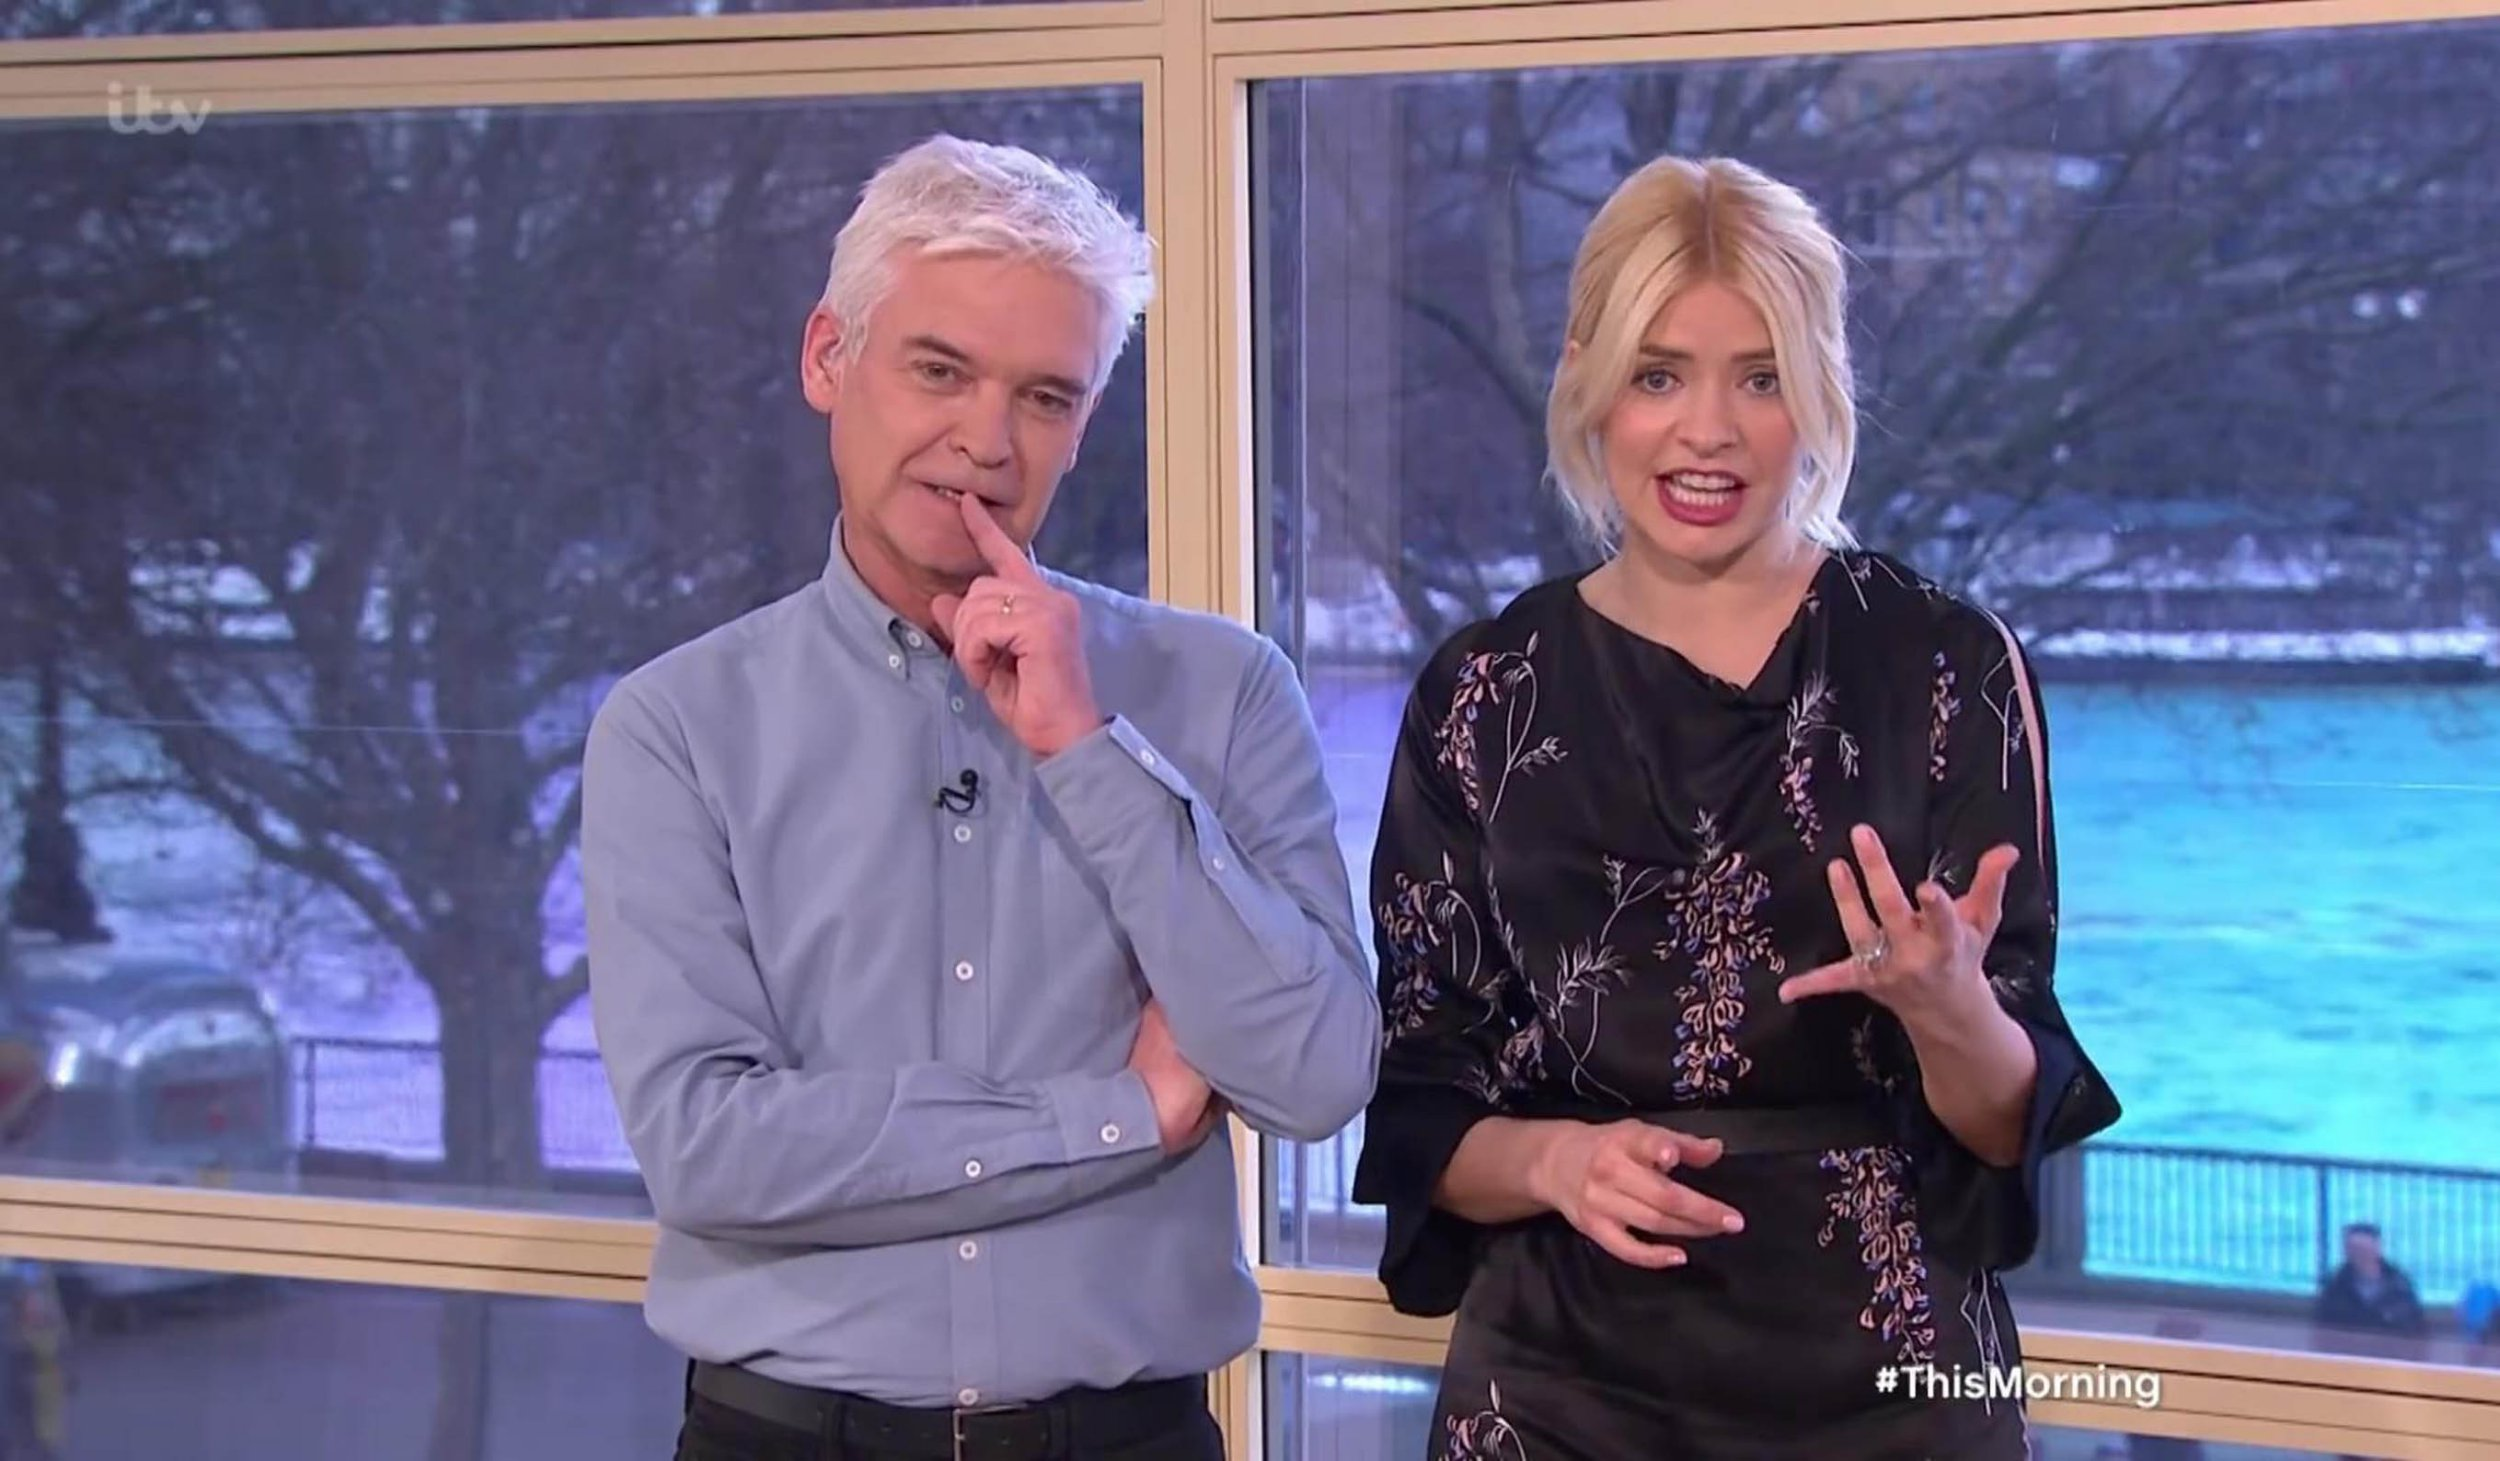 """29-3-2018 Holly and Phillip Look Back at Their Very First This Morning Appearances During a Segment on TV Show """"This Morning"""" Pictured: Holly Willoughby & Phillip Schofield PLANET PHOTOS www.planetphotos.co.uk info@planetphotos.co.uk +44 (0)20 8883 1438"""